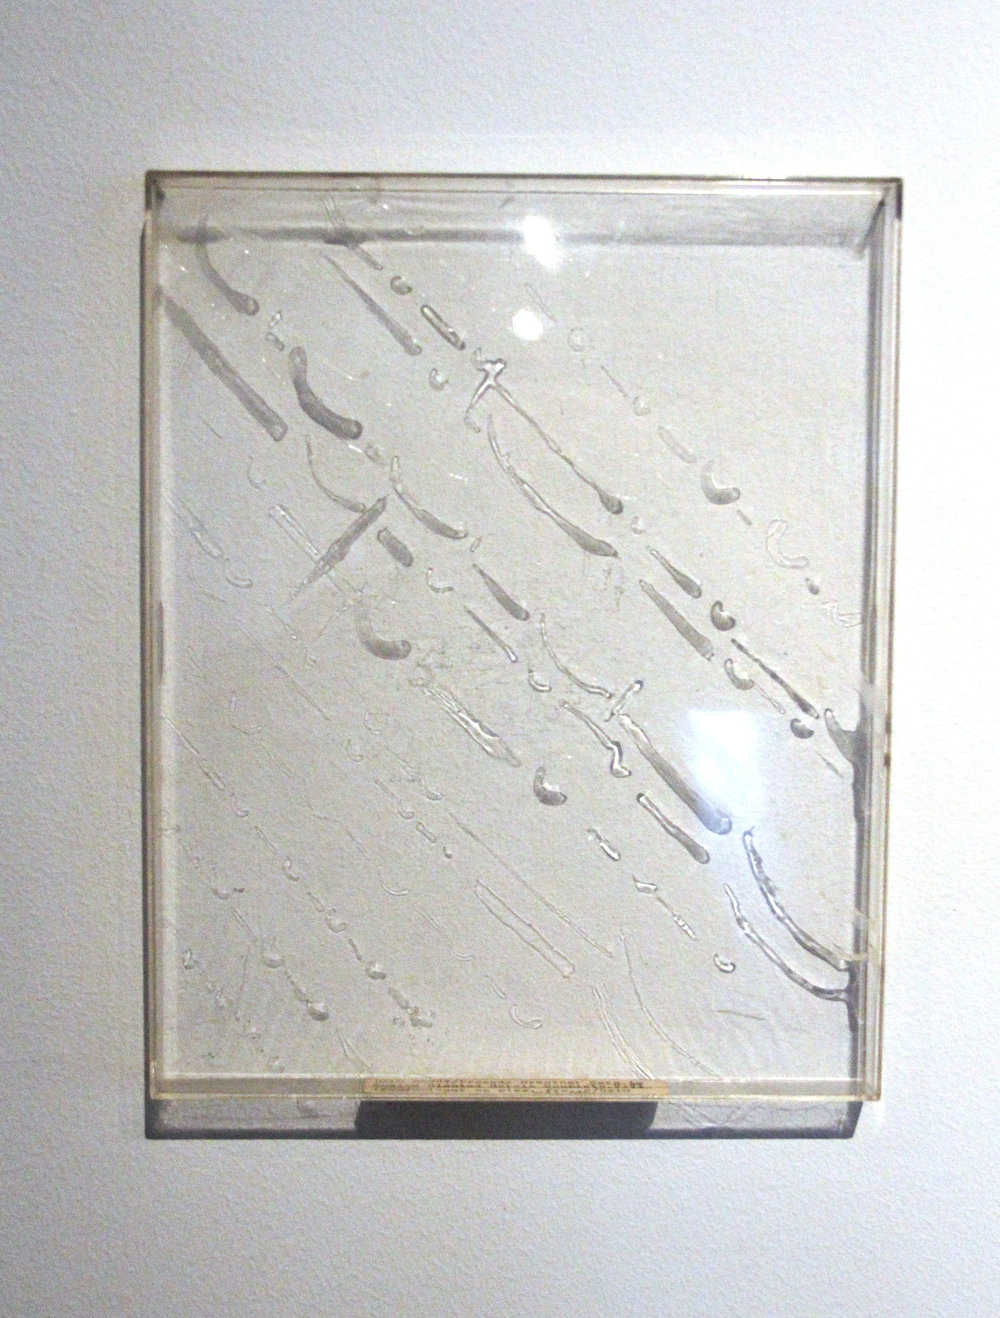 Zero to Twelve Slanted Heroic Couplets V & VI; Prosody Drawings series; 1973-1976; Acrylic and resin emulsion on plexiglass; 11 ¼ x 9 ¼""